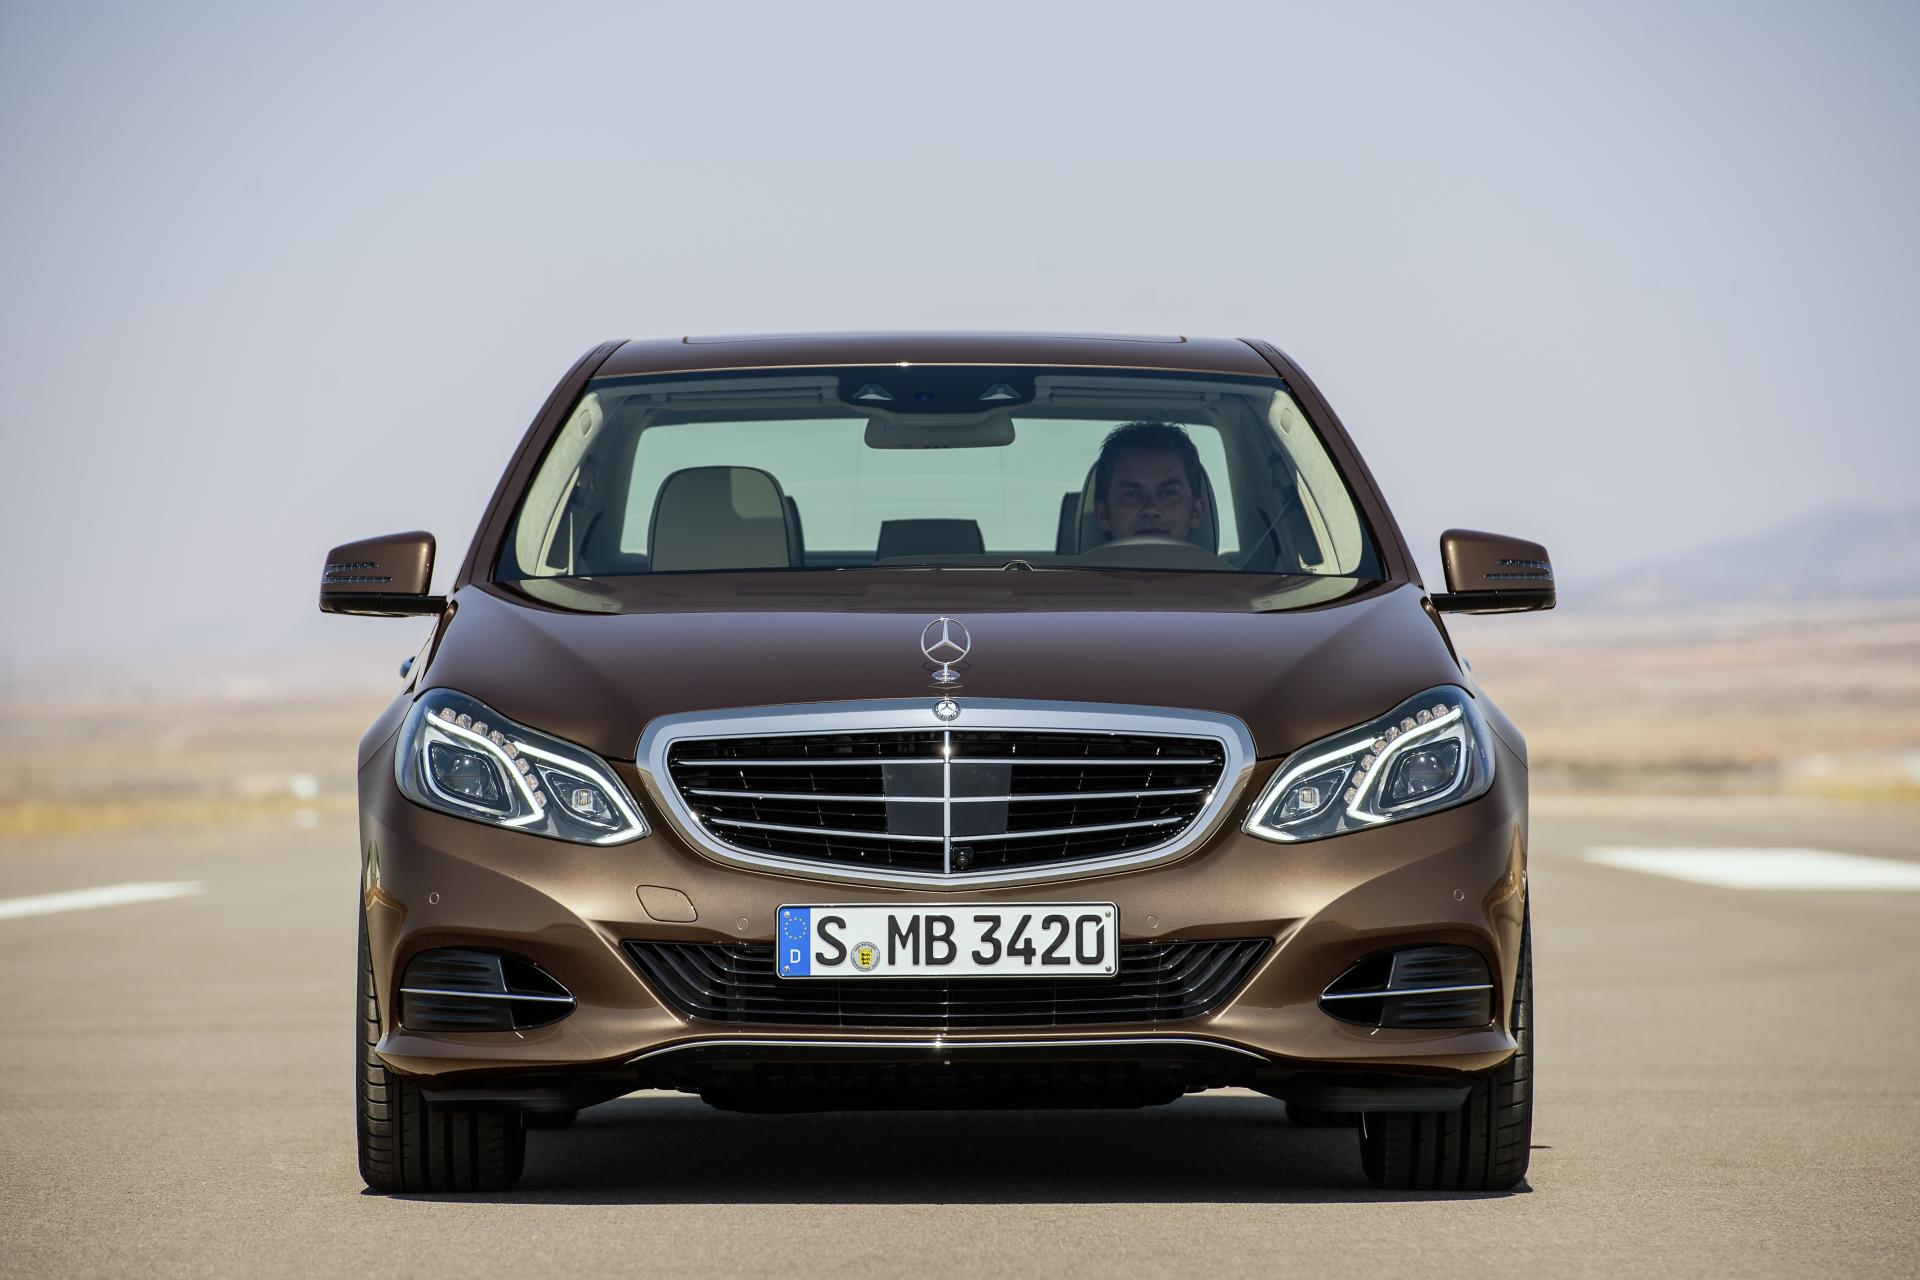 2014 mercedes benz e class news and information for 2014 mercedes benz truck